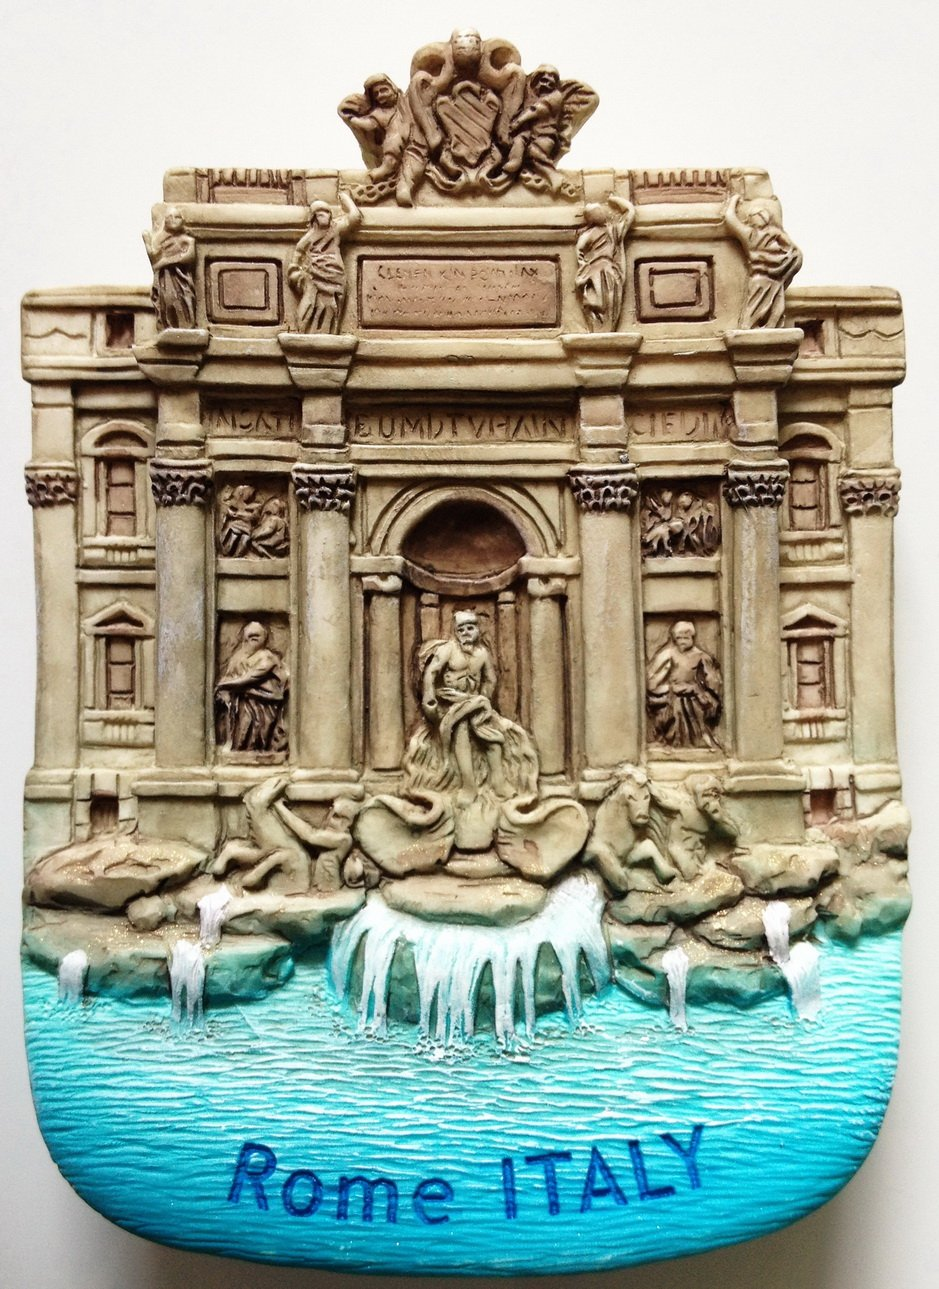 Trevi Fountain Rome Italy Resin 3D fridge Refrigerator Thai Magnet Hand Made Craft. by Thai MCnets by Thai MCnets